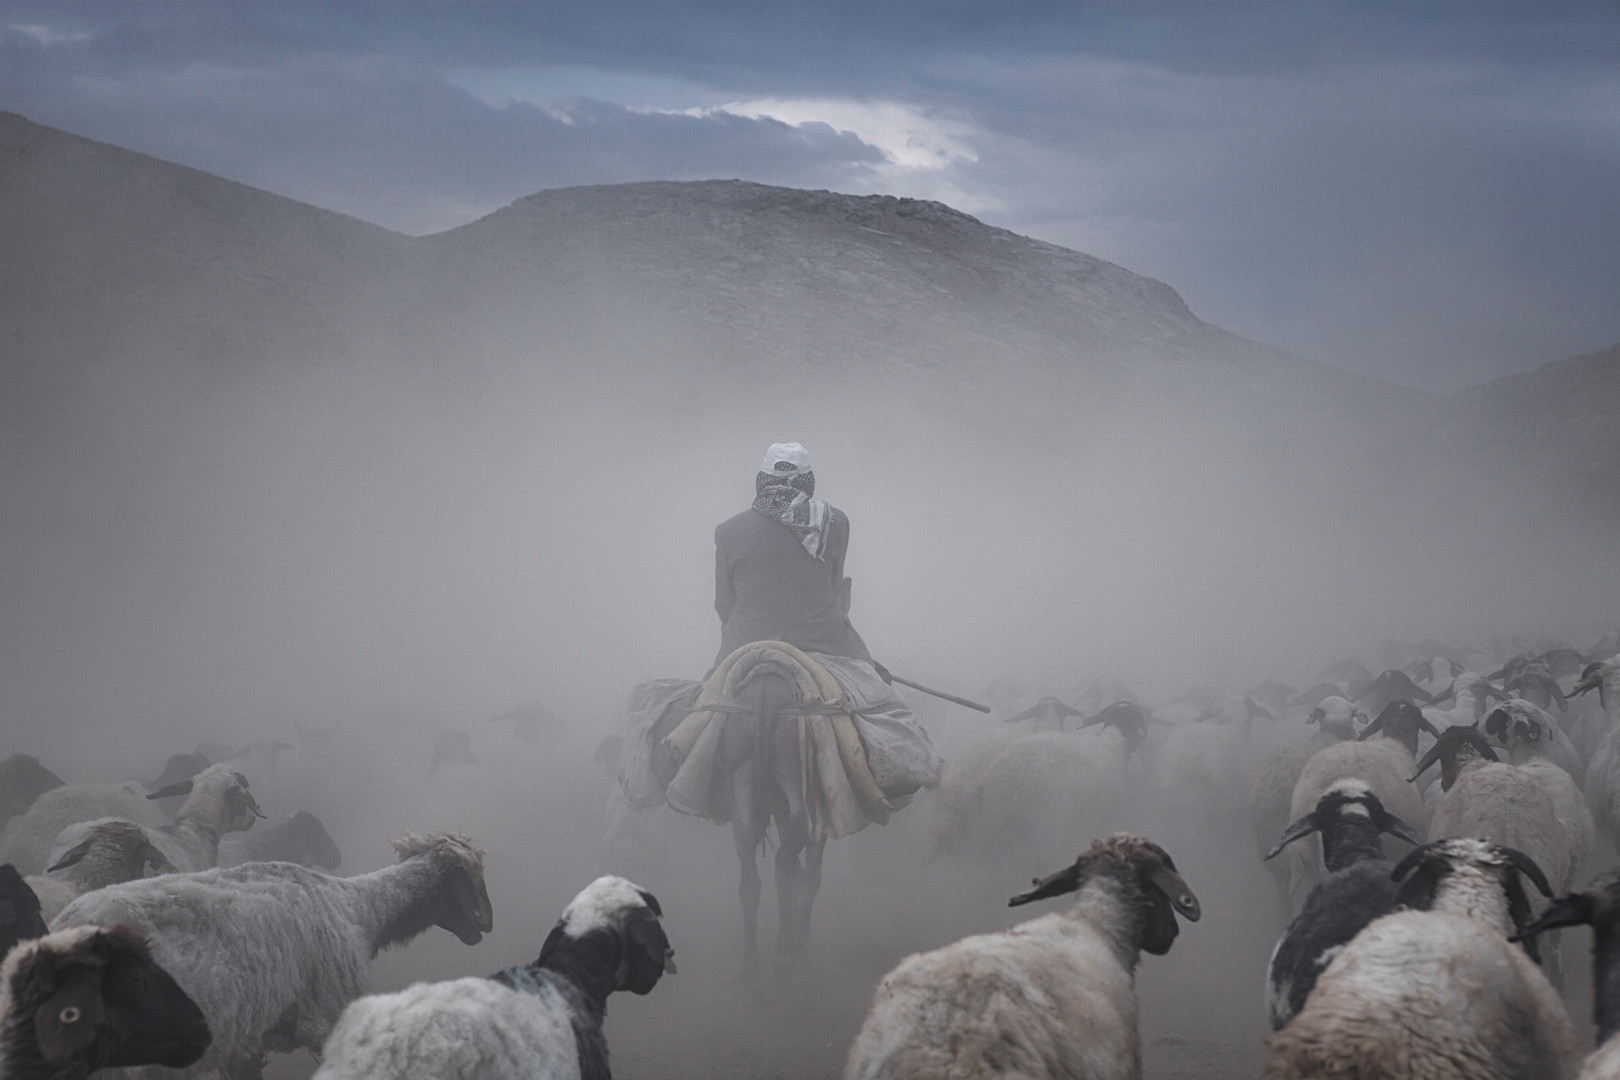 The shepherd and his herd try to move in a dense dust. Alacayar, Van. August 2017.